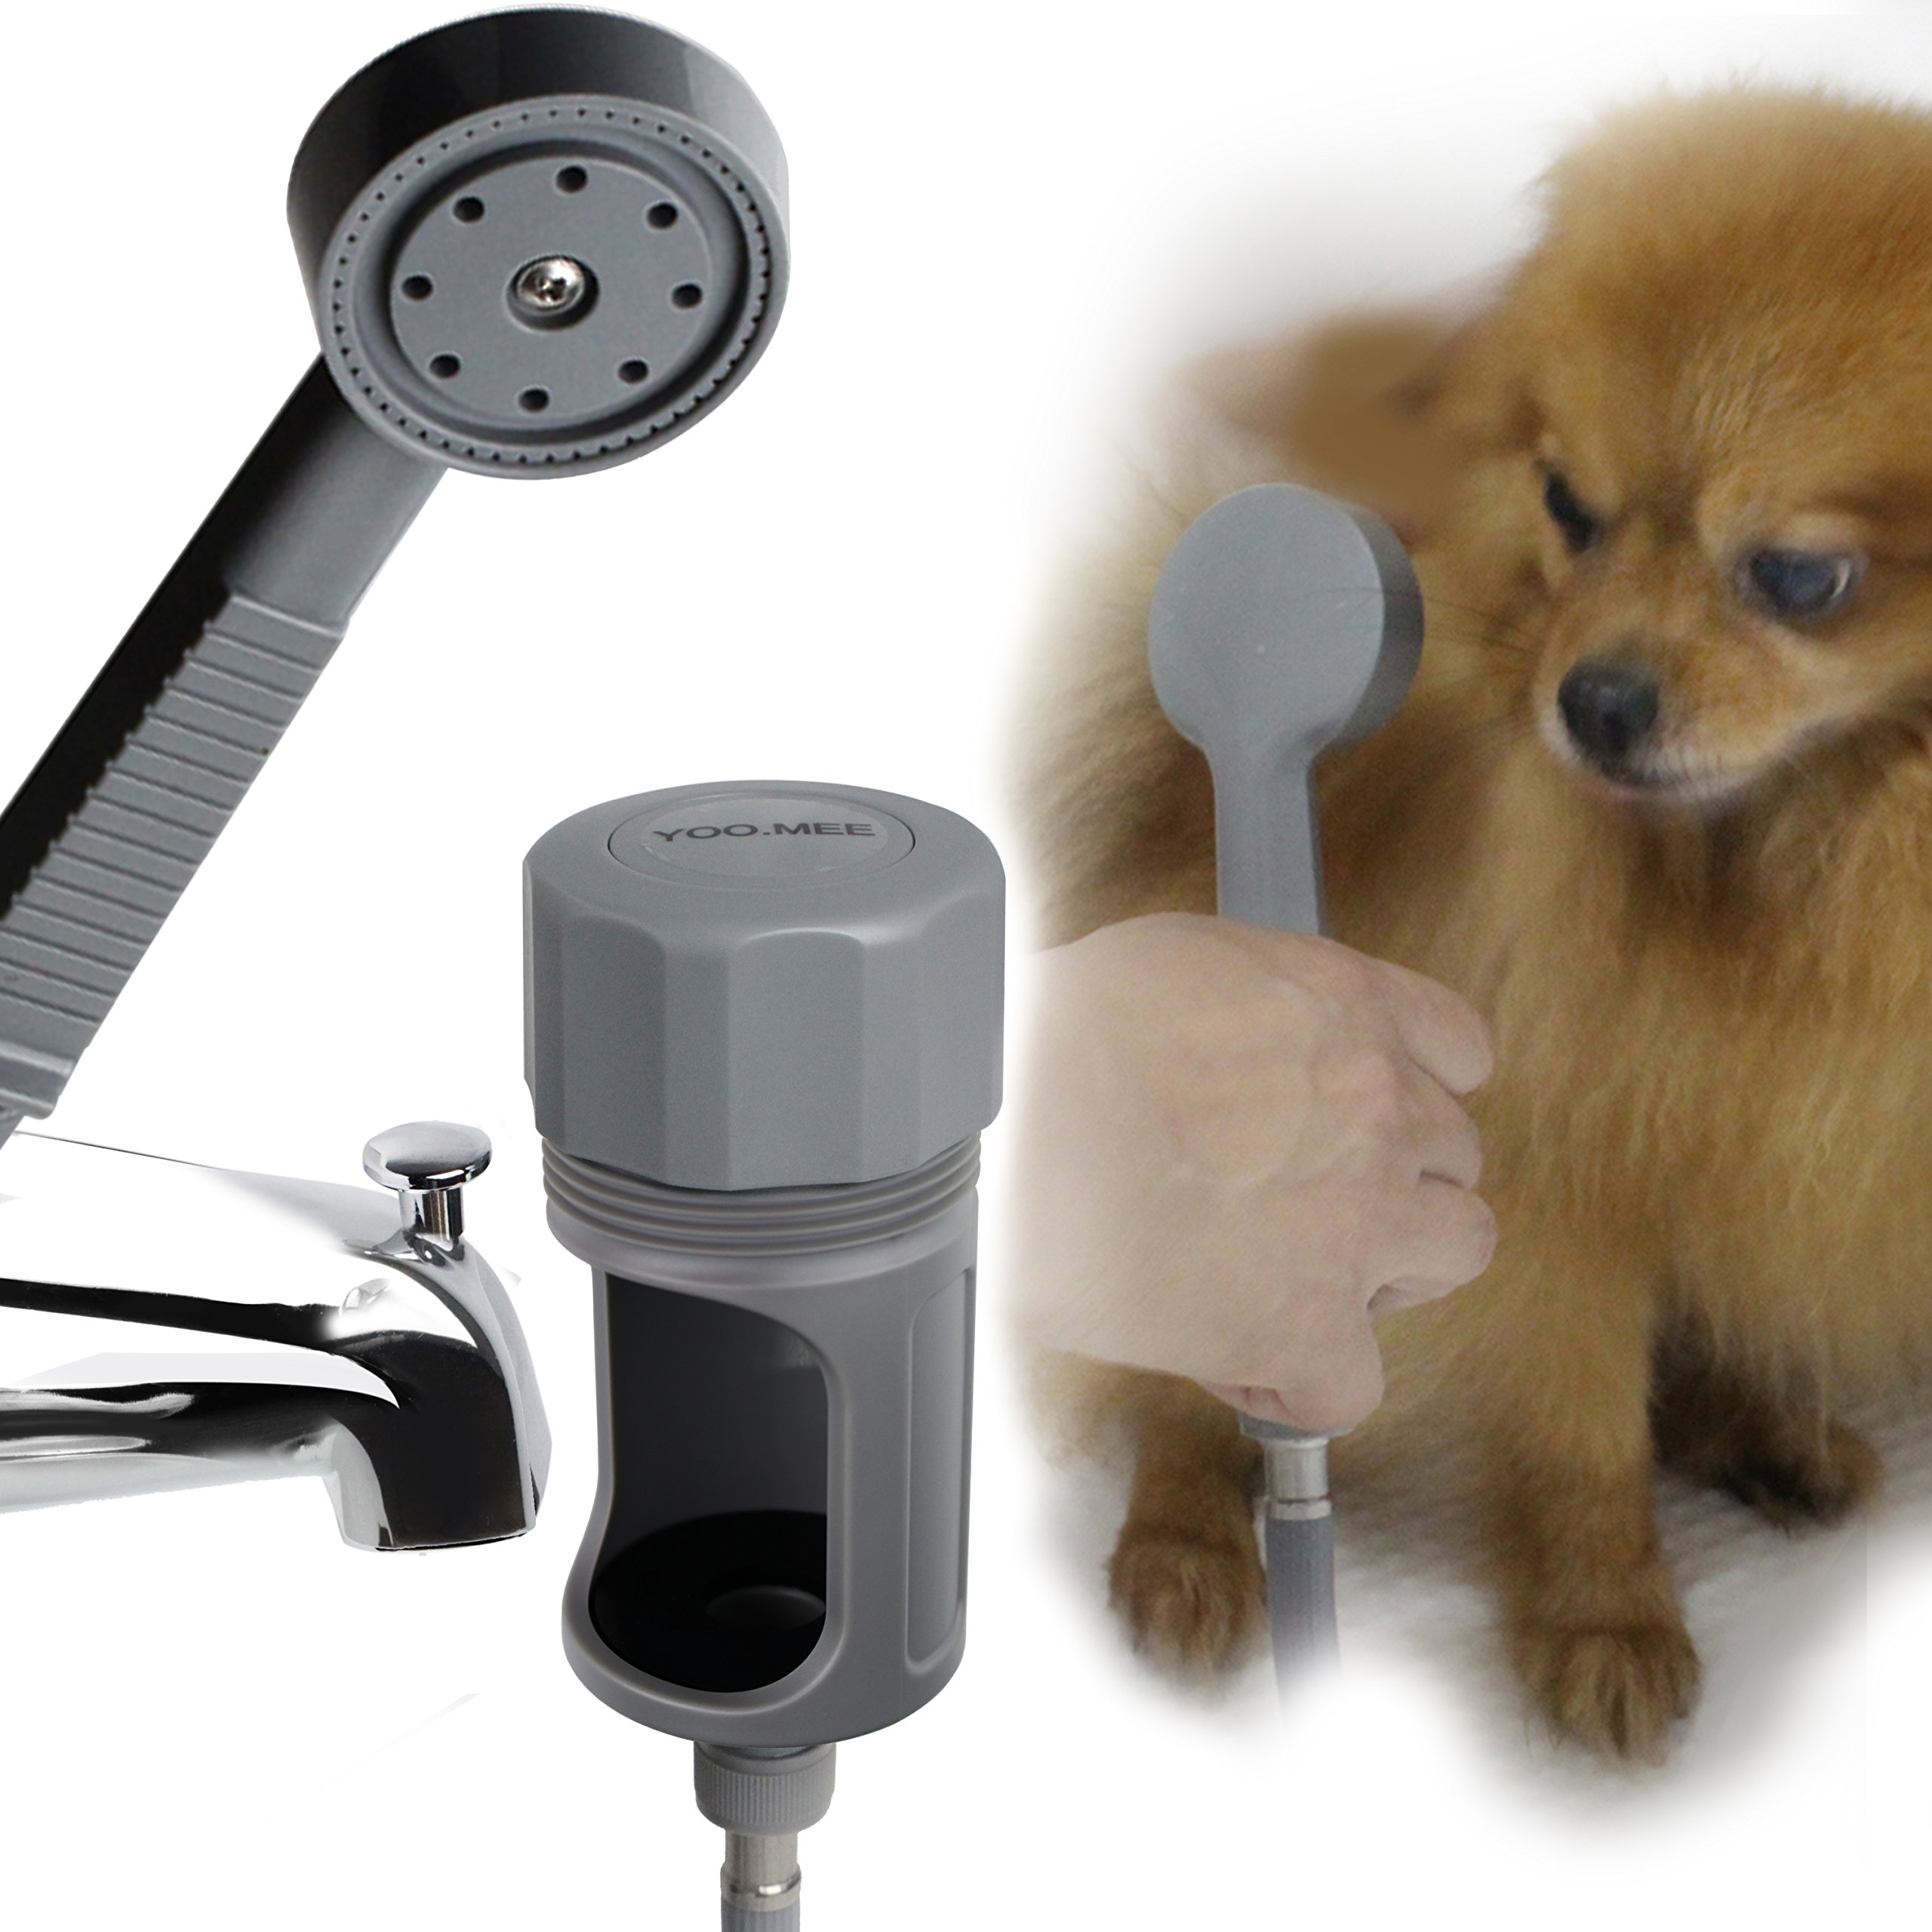 YOO.MEE Tub Spout Shower Sprayer, Ideal for Bathing Child, Washing Pets and Cleaning Tub, Only for Use On Tub Spout with Diverters